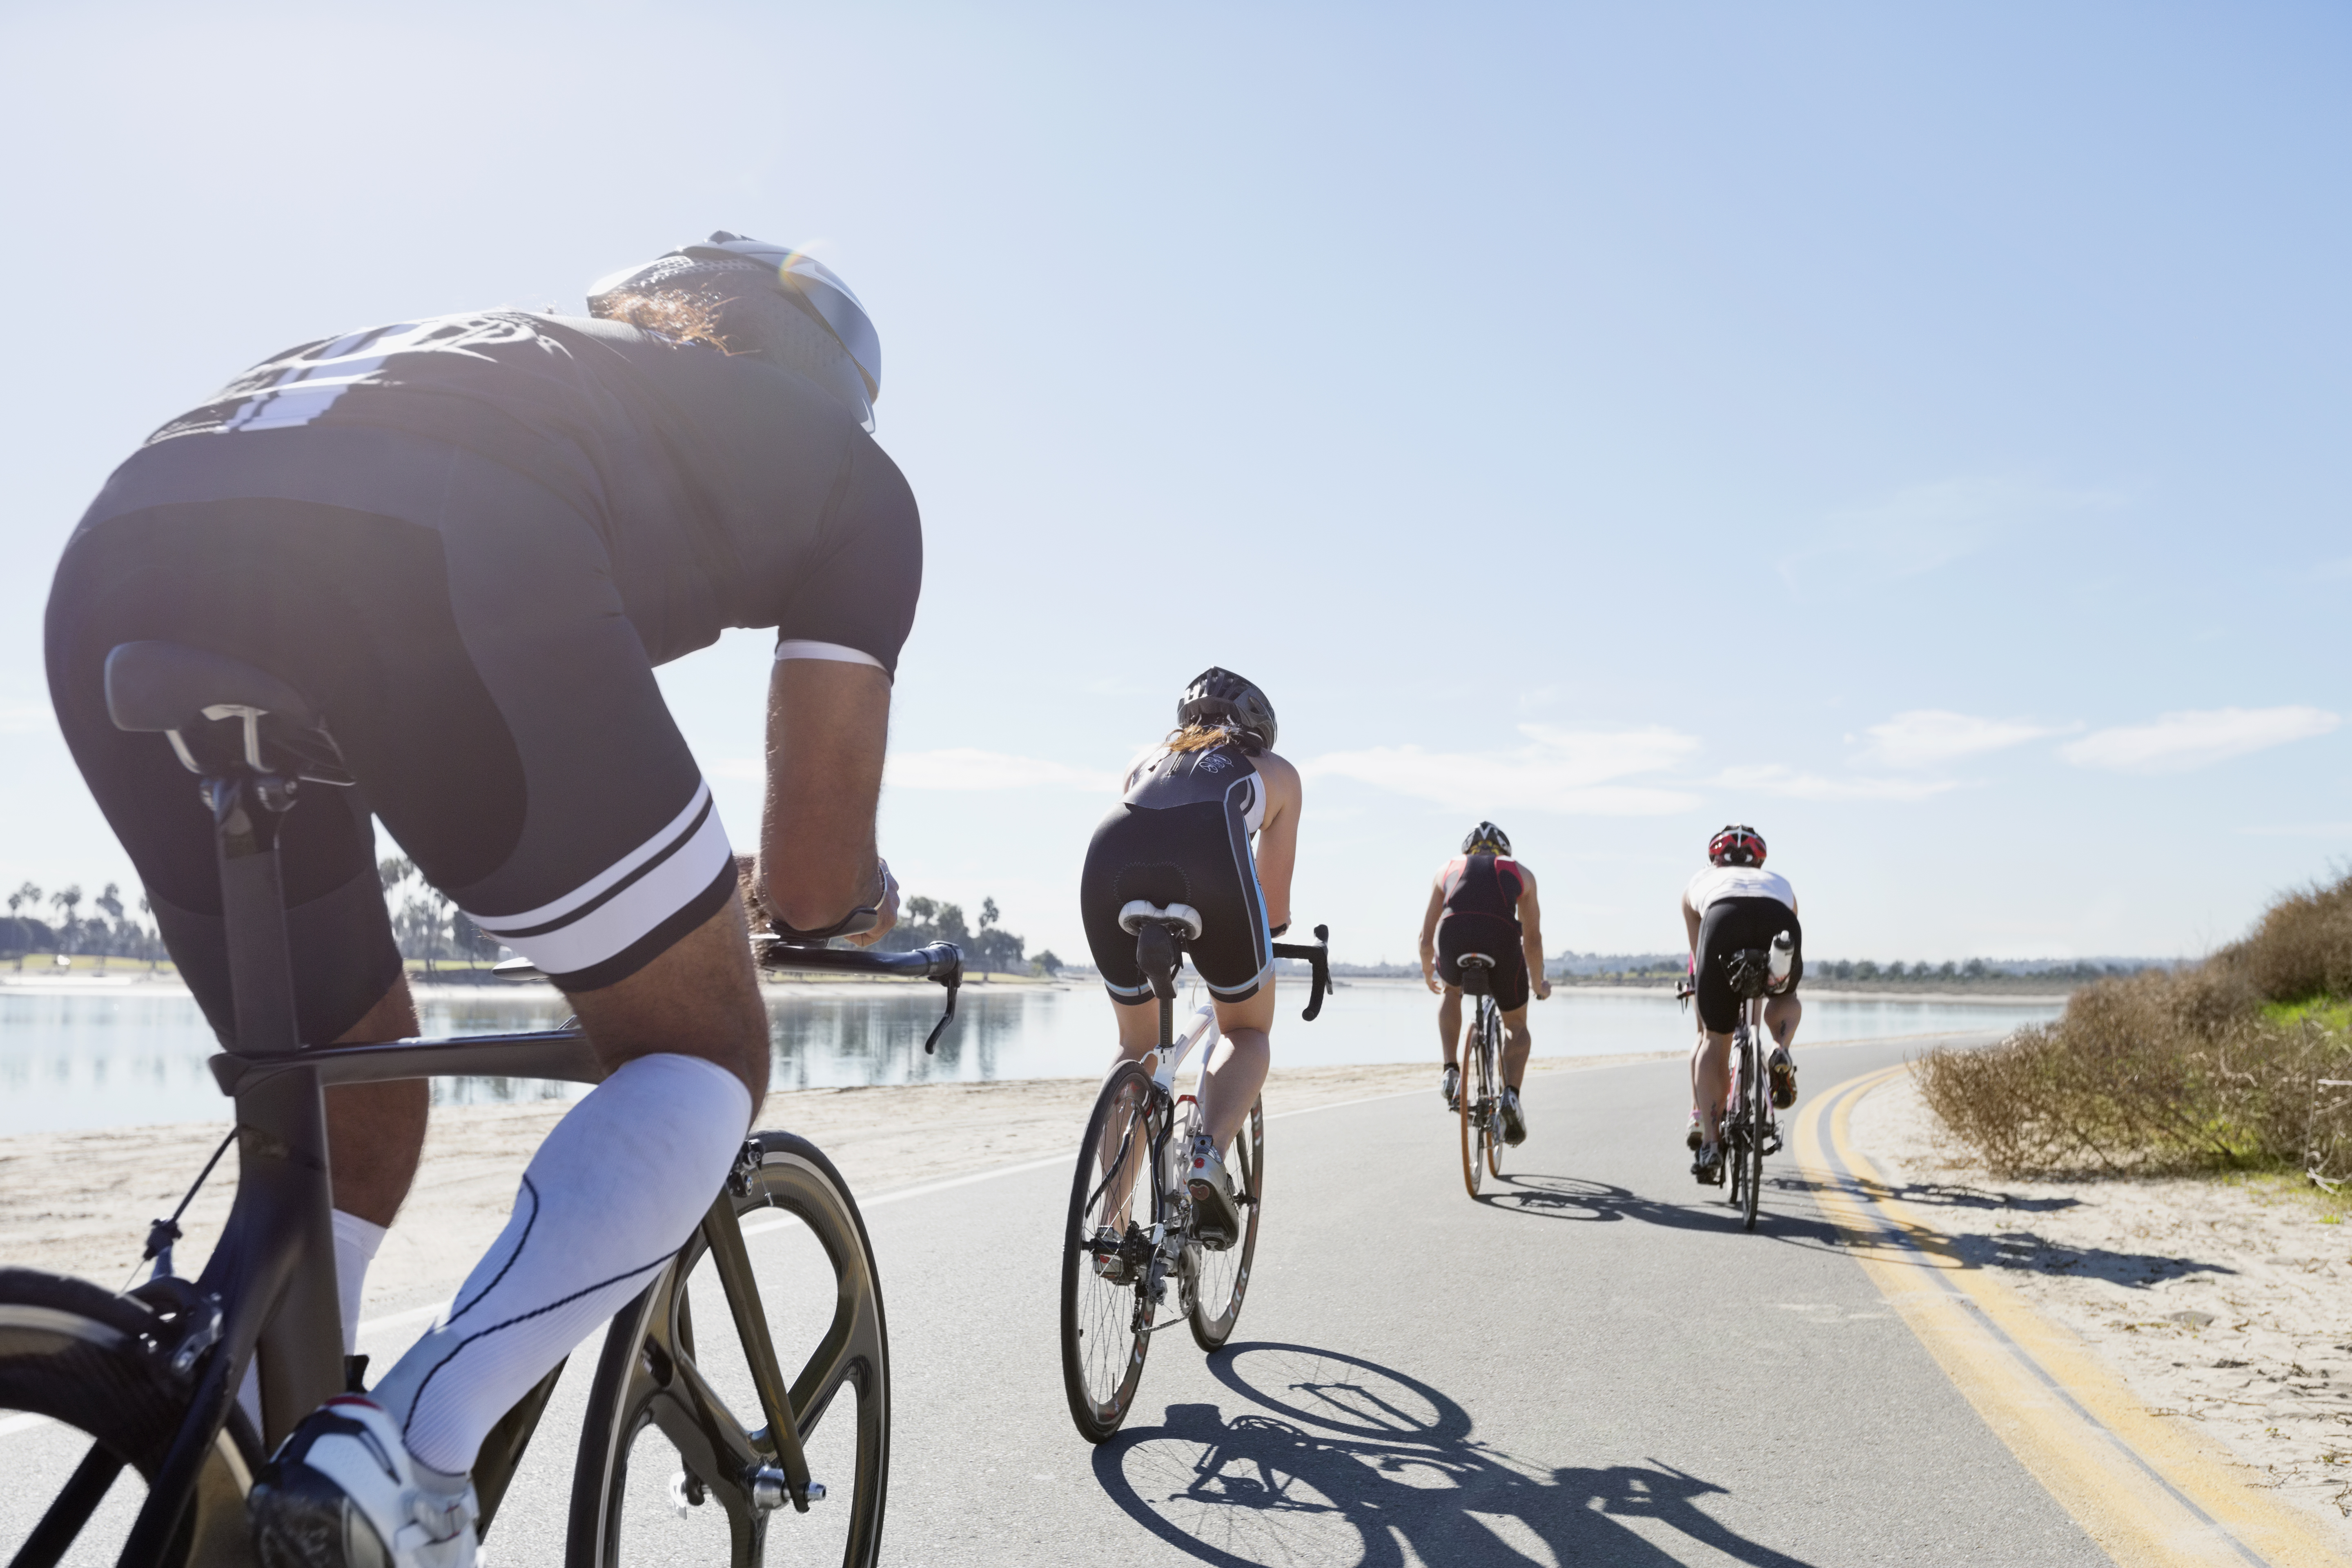 POV of group of cyclist from the rear